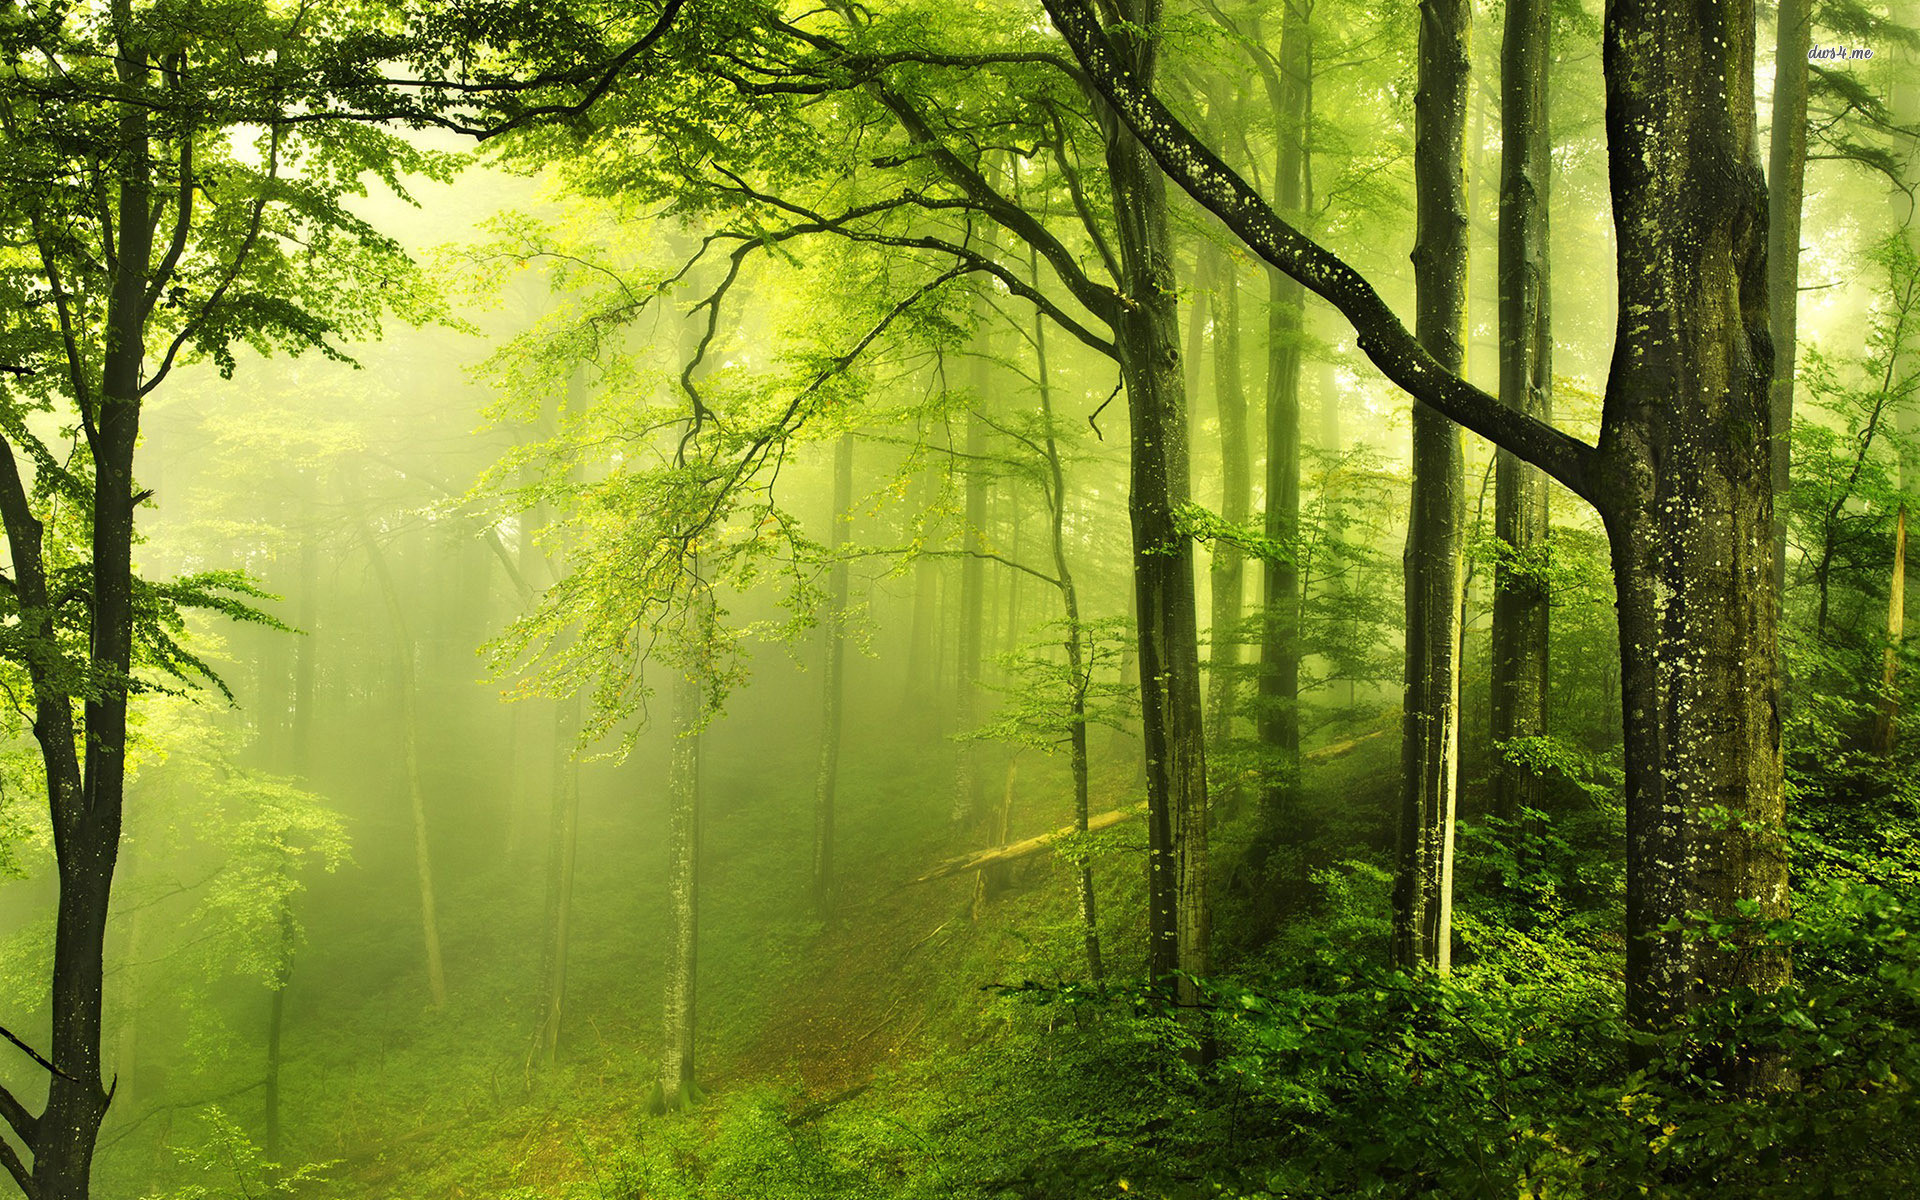 1920x1200 Beautiful Green Forest Nature Wallpaper Deskto #5336 Wallpaper .